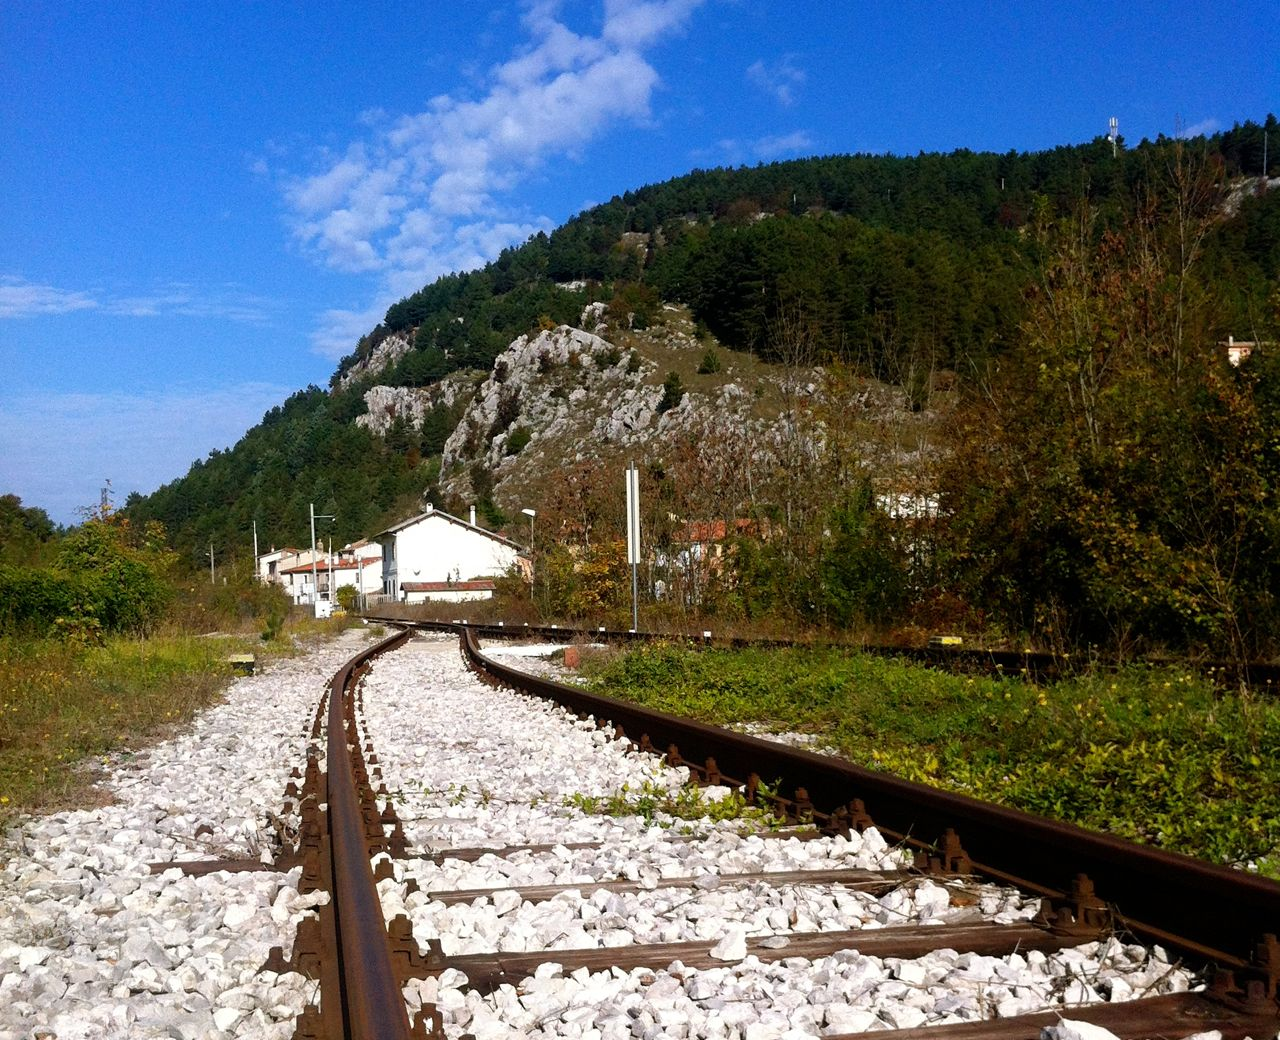 Train travel through Molise is a relaxing way to explore the countryside.